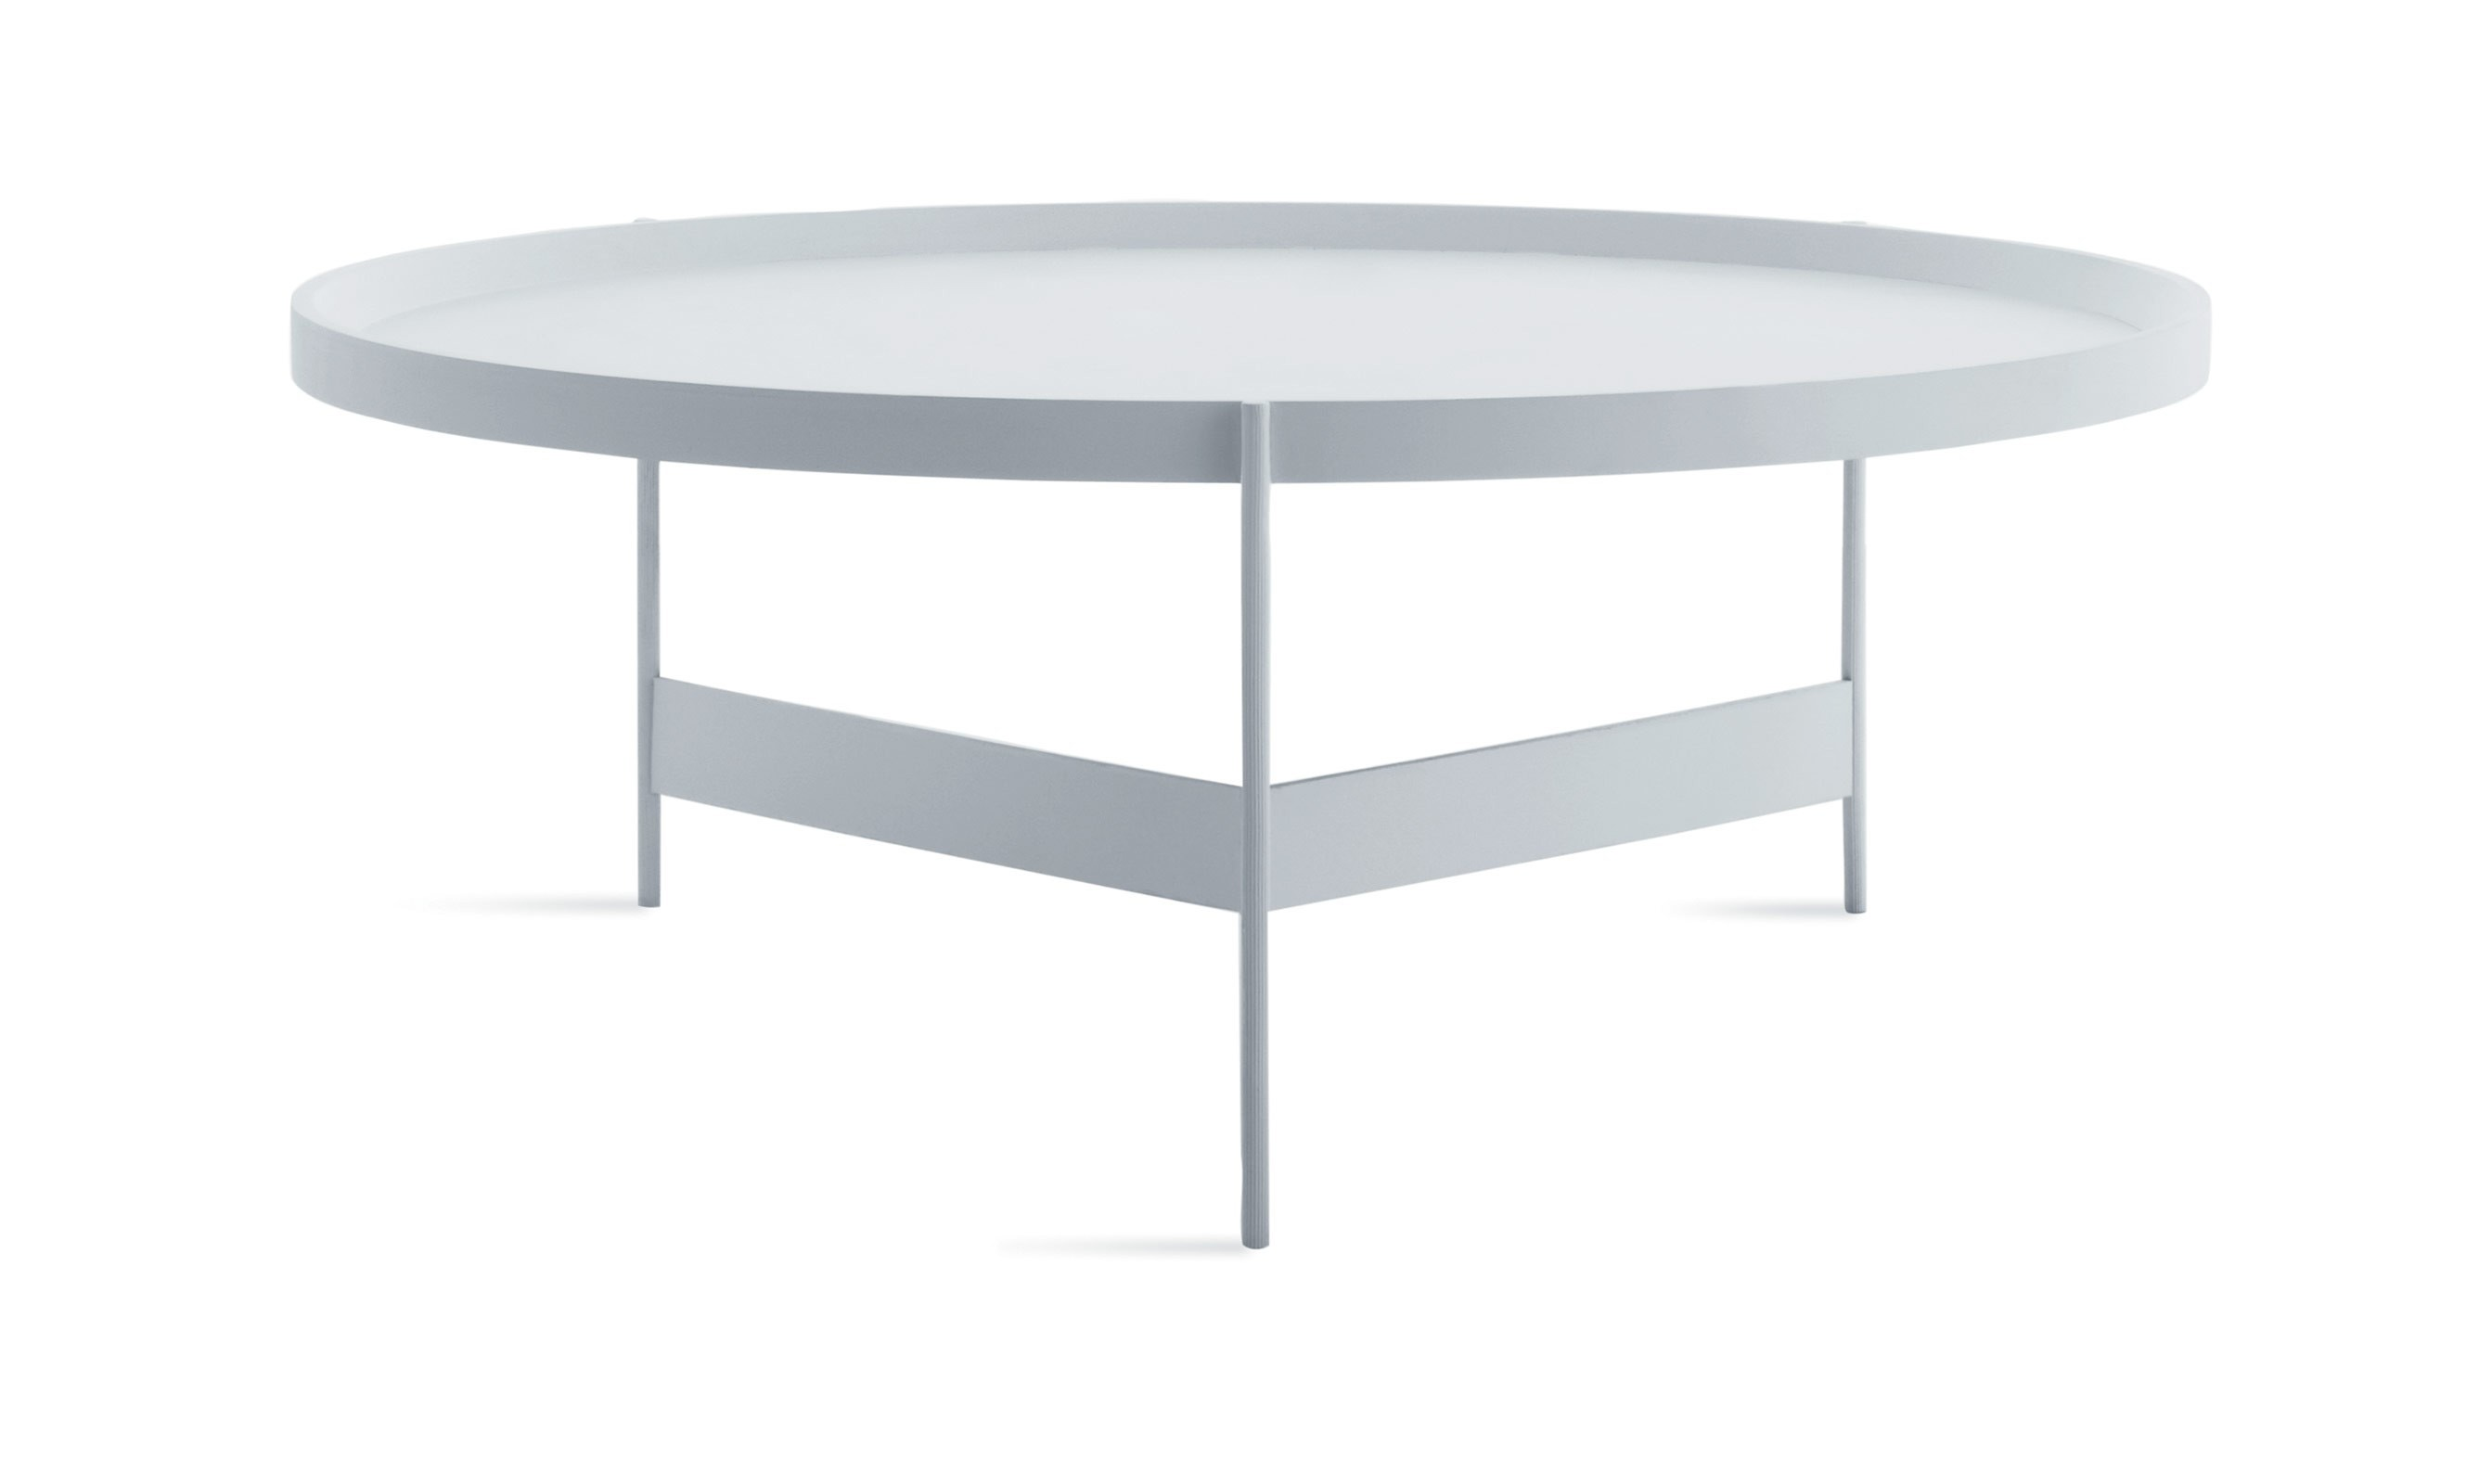 Pianca Abaco D.76 Table